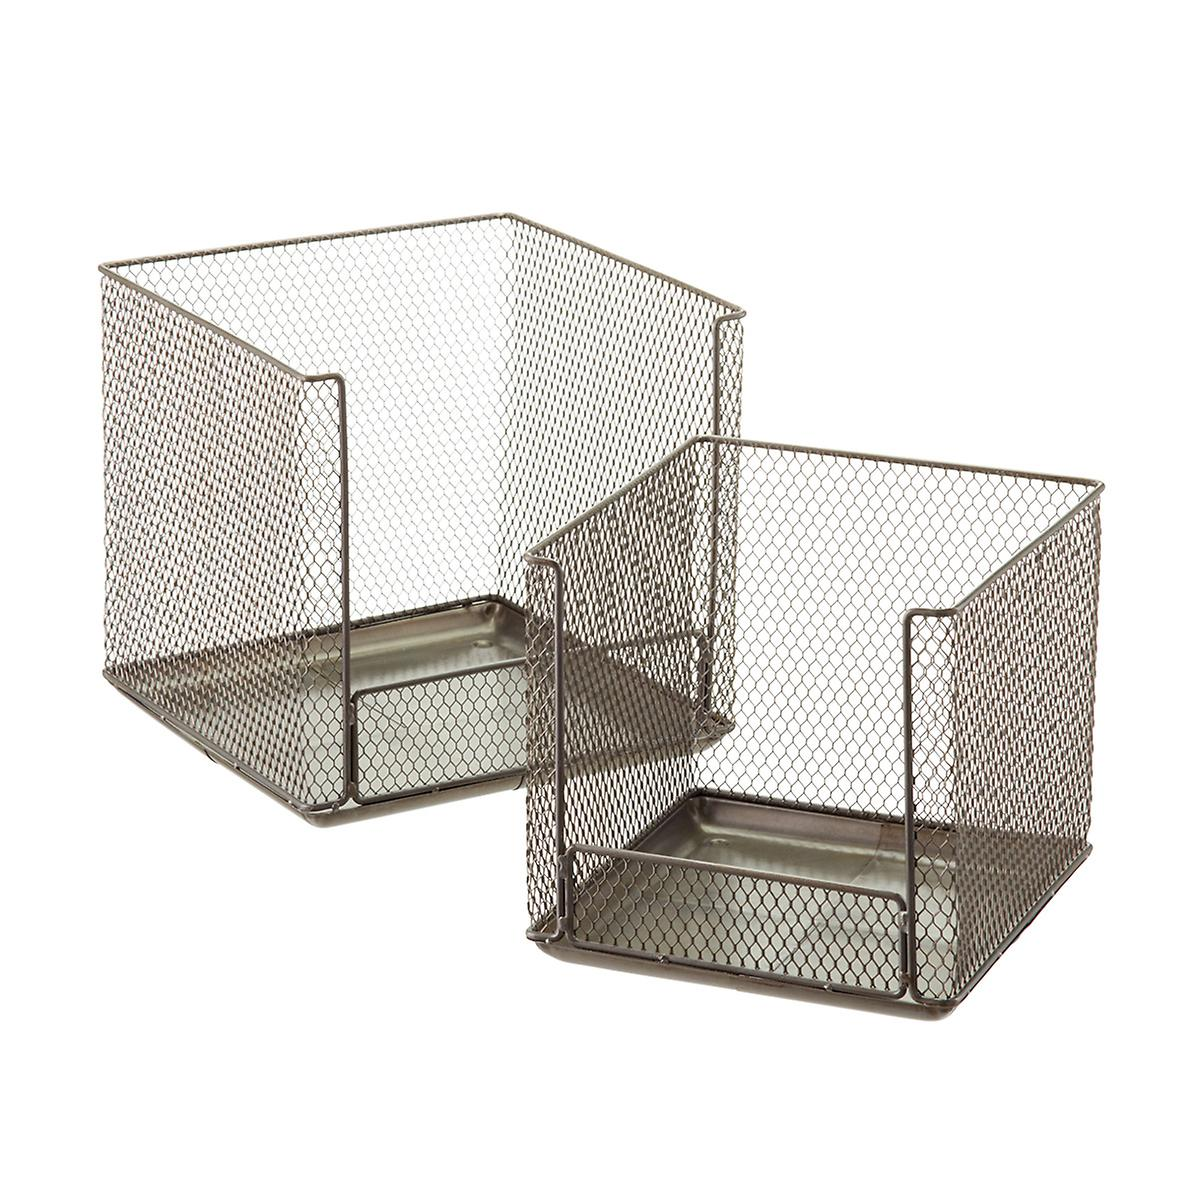 Design Ideas Open Front Stackable Wire Storage Cubes. Design Ideas Open Front Stackable Wire Storage Cubes   The